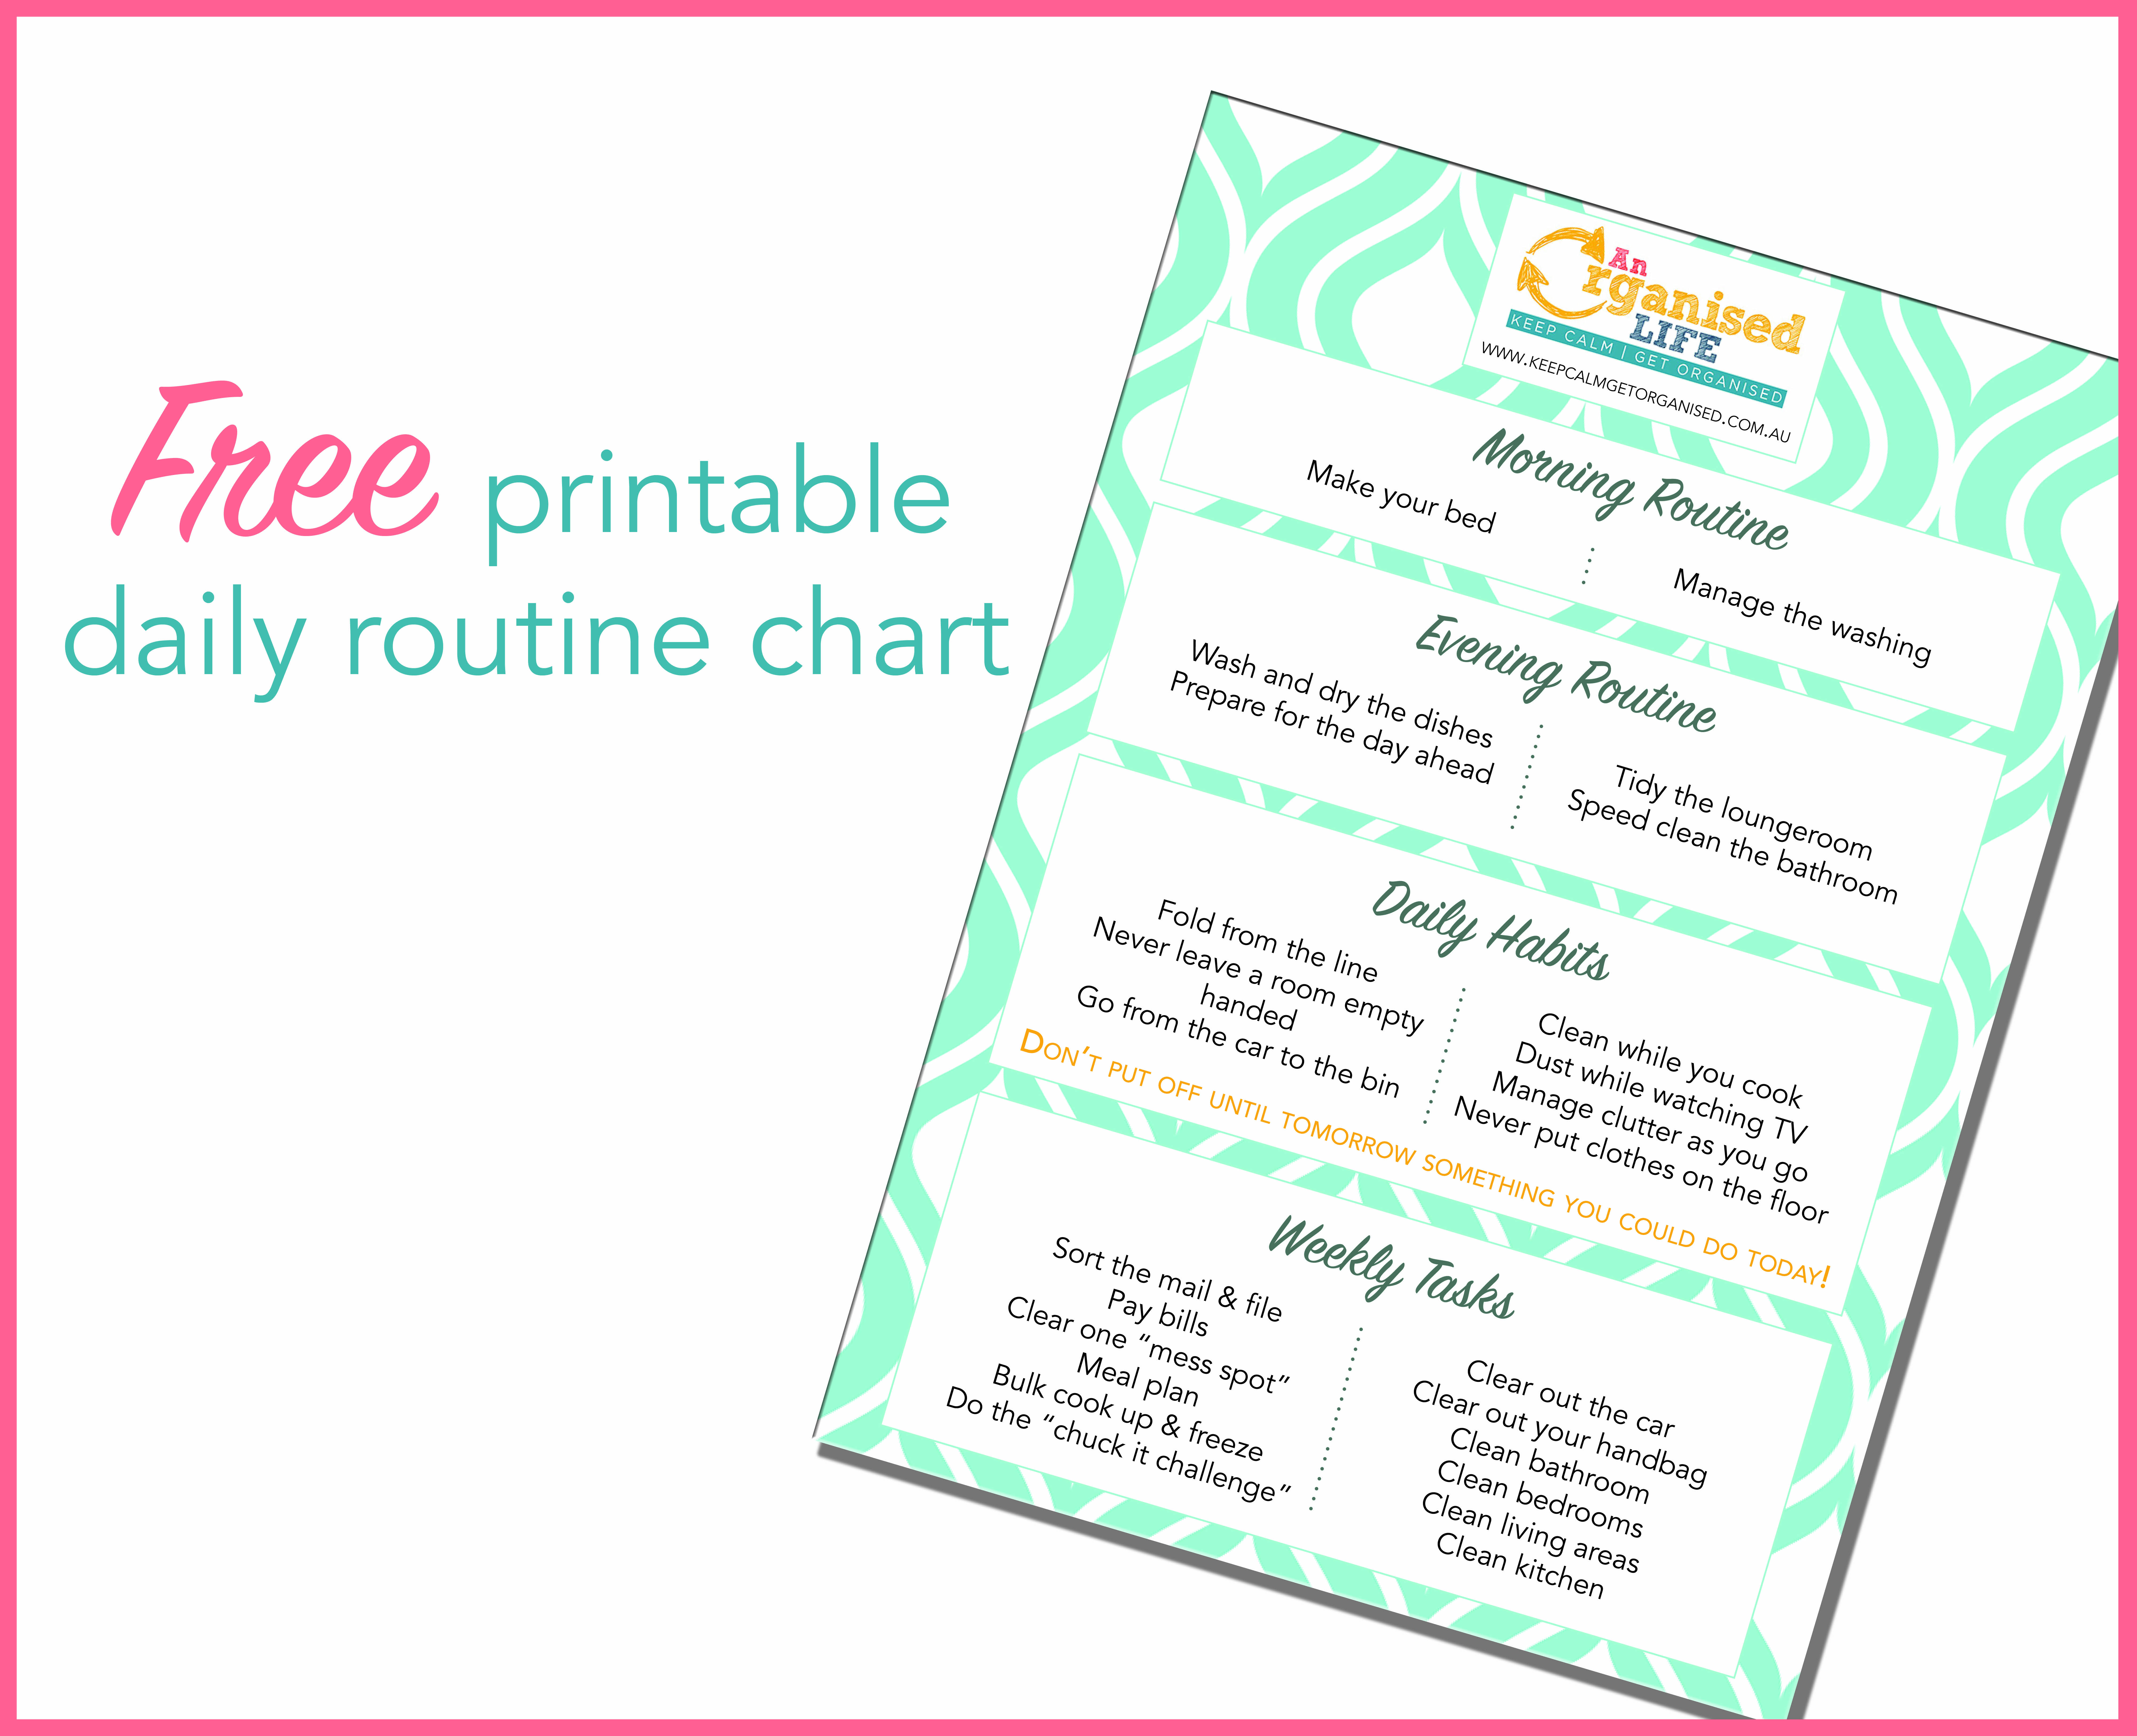 photograph relating to Morning Routine Checklist Printable identify Absolutely free printable each day timetable chart Preserve Serene Consider Organised